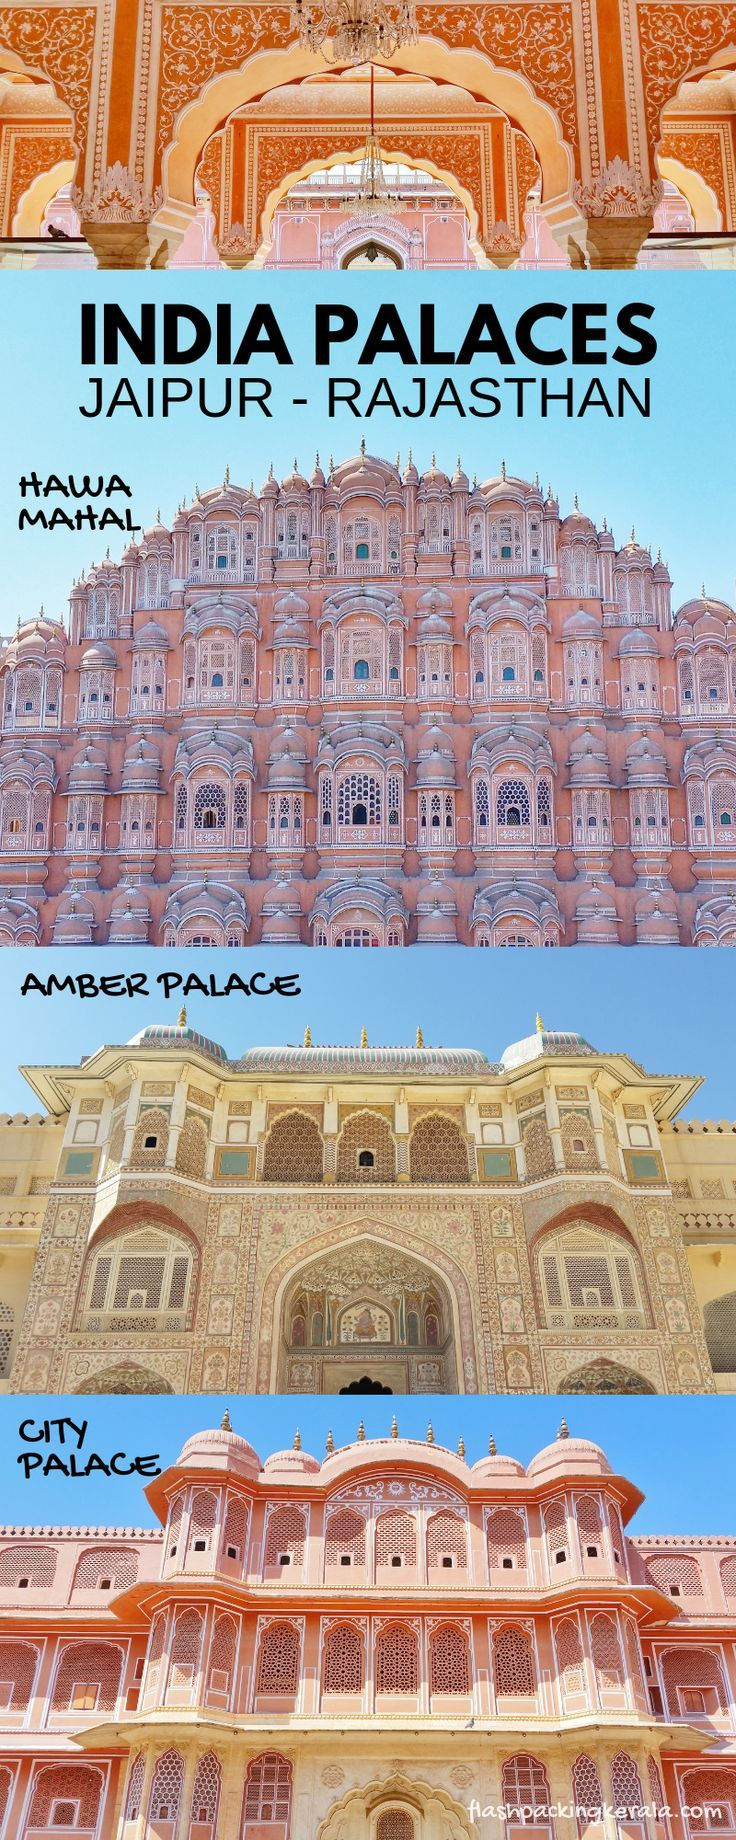 3 days in Jaipur itinerary with PINK spots! 👑 BEST places to